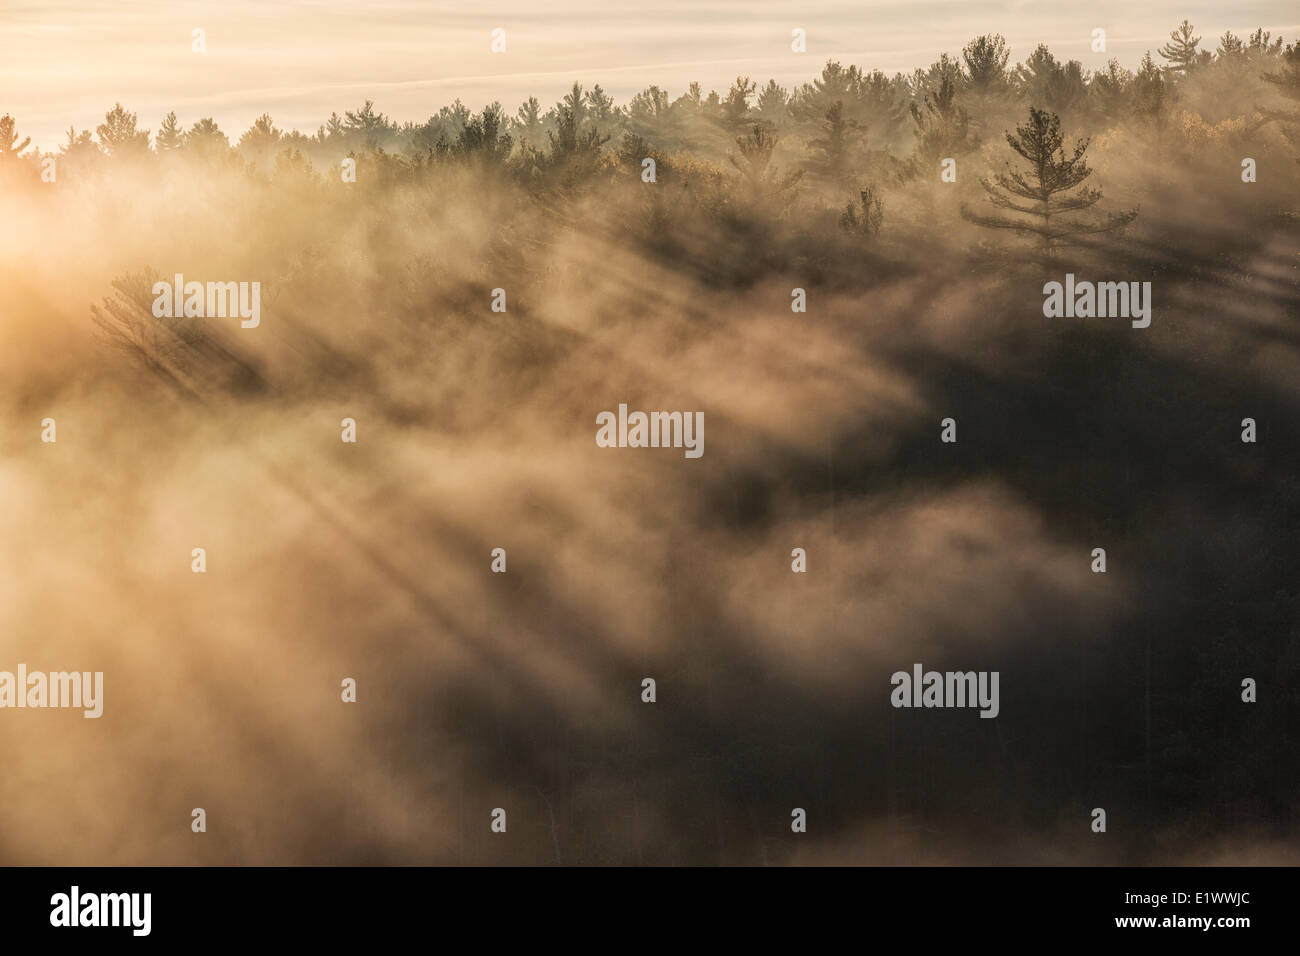 The rising sun shines through the mist lifting from the depths of the Barron Canyon in Algonquin Park, Ontario - Stock Image